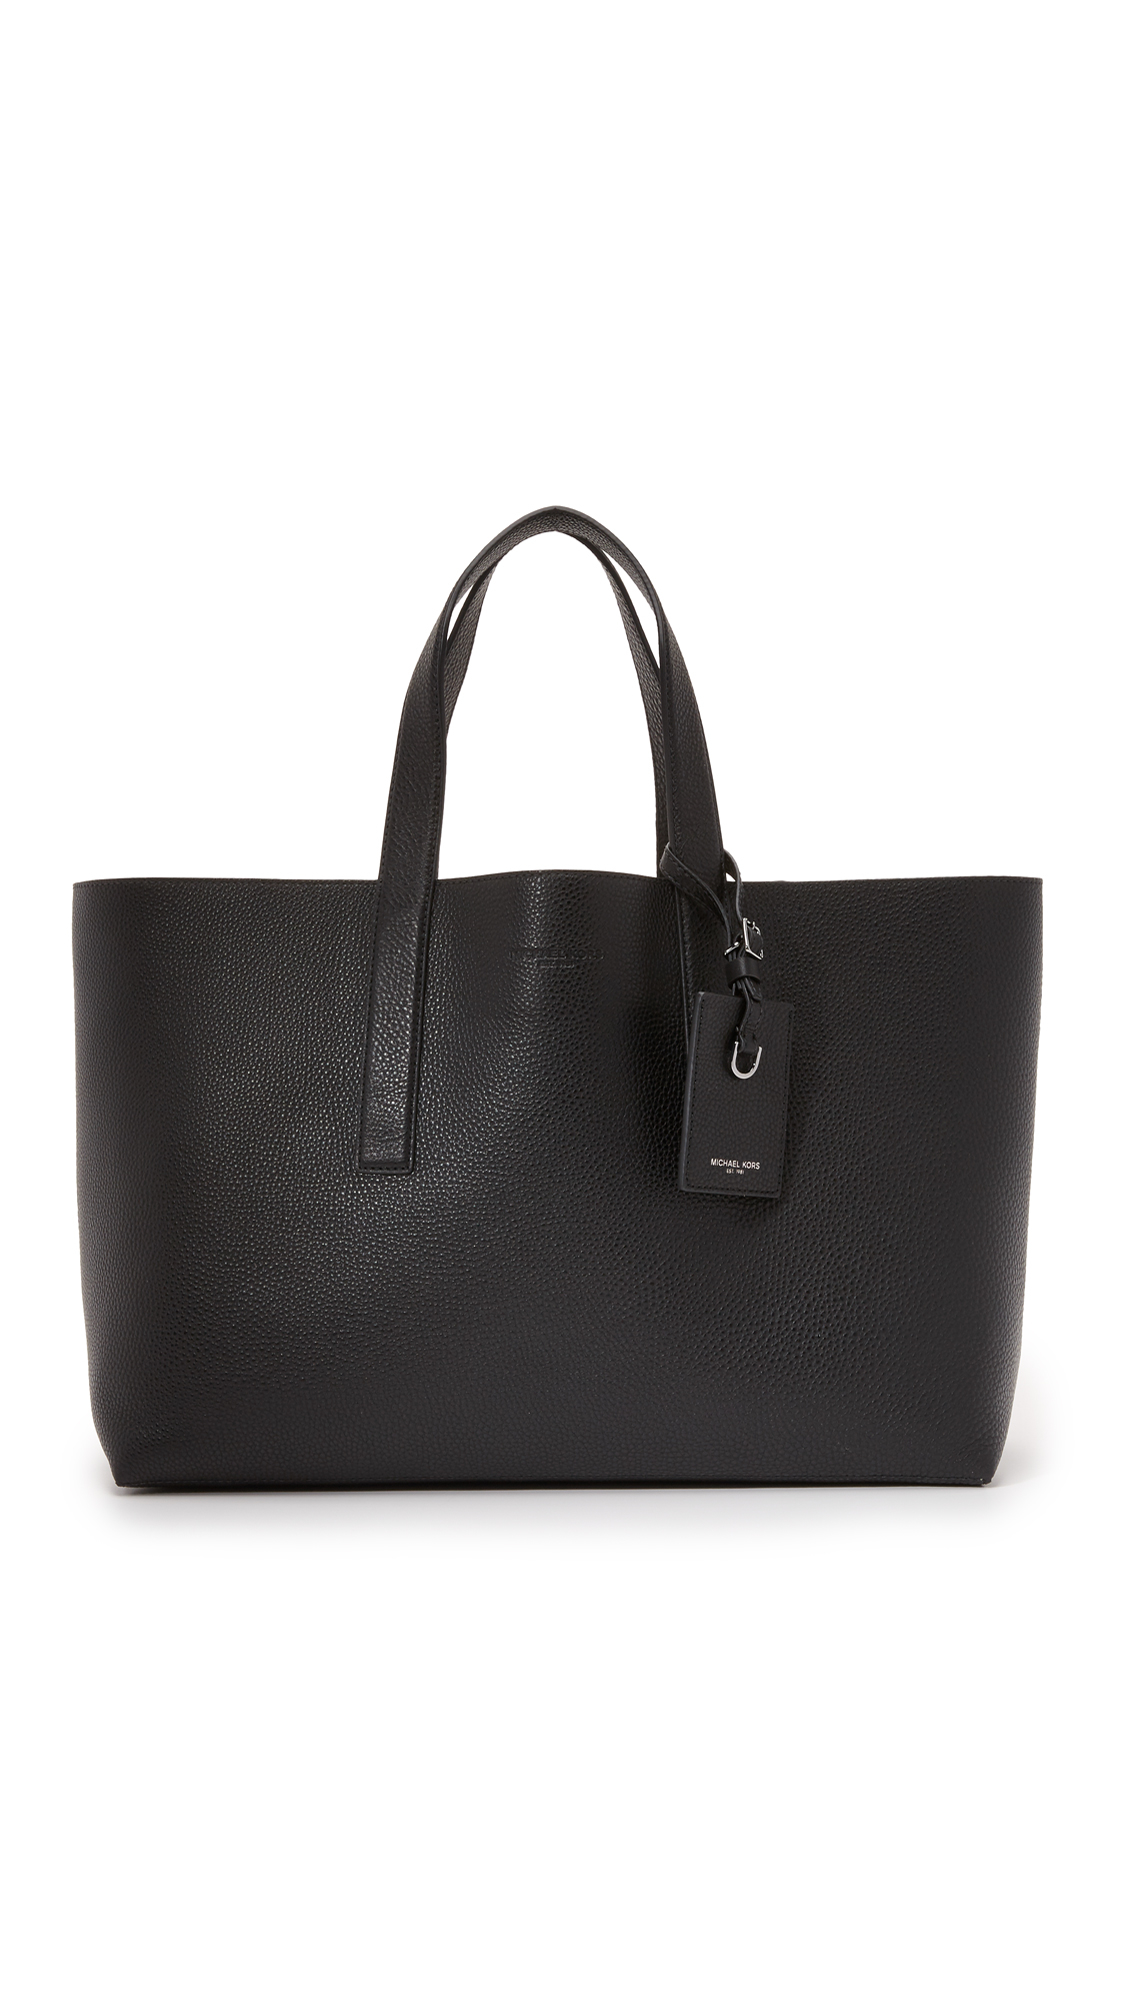 c0ddfbe582dccb Michael Kors Mason East West Reversible Leather Tote in Black for ...